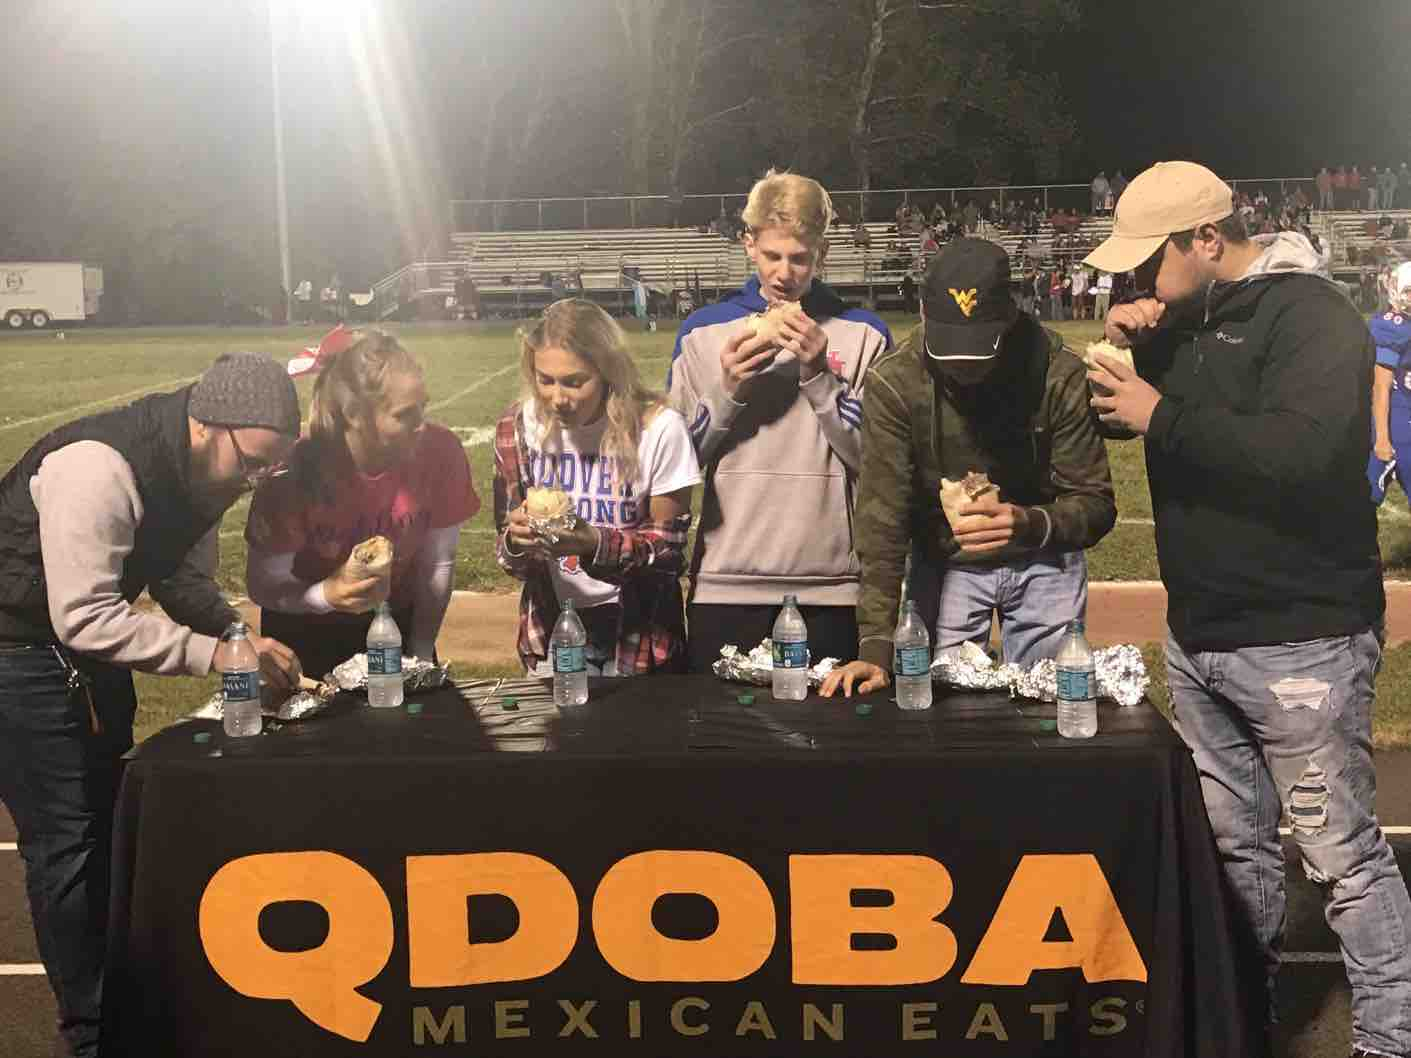 Burrito Eating Contest - WV High School Football Game